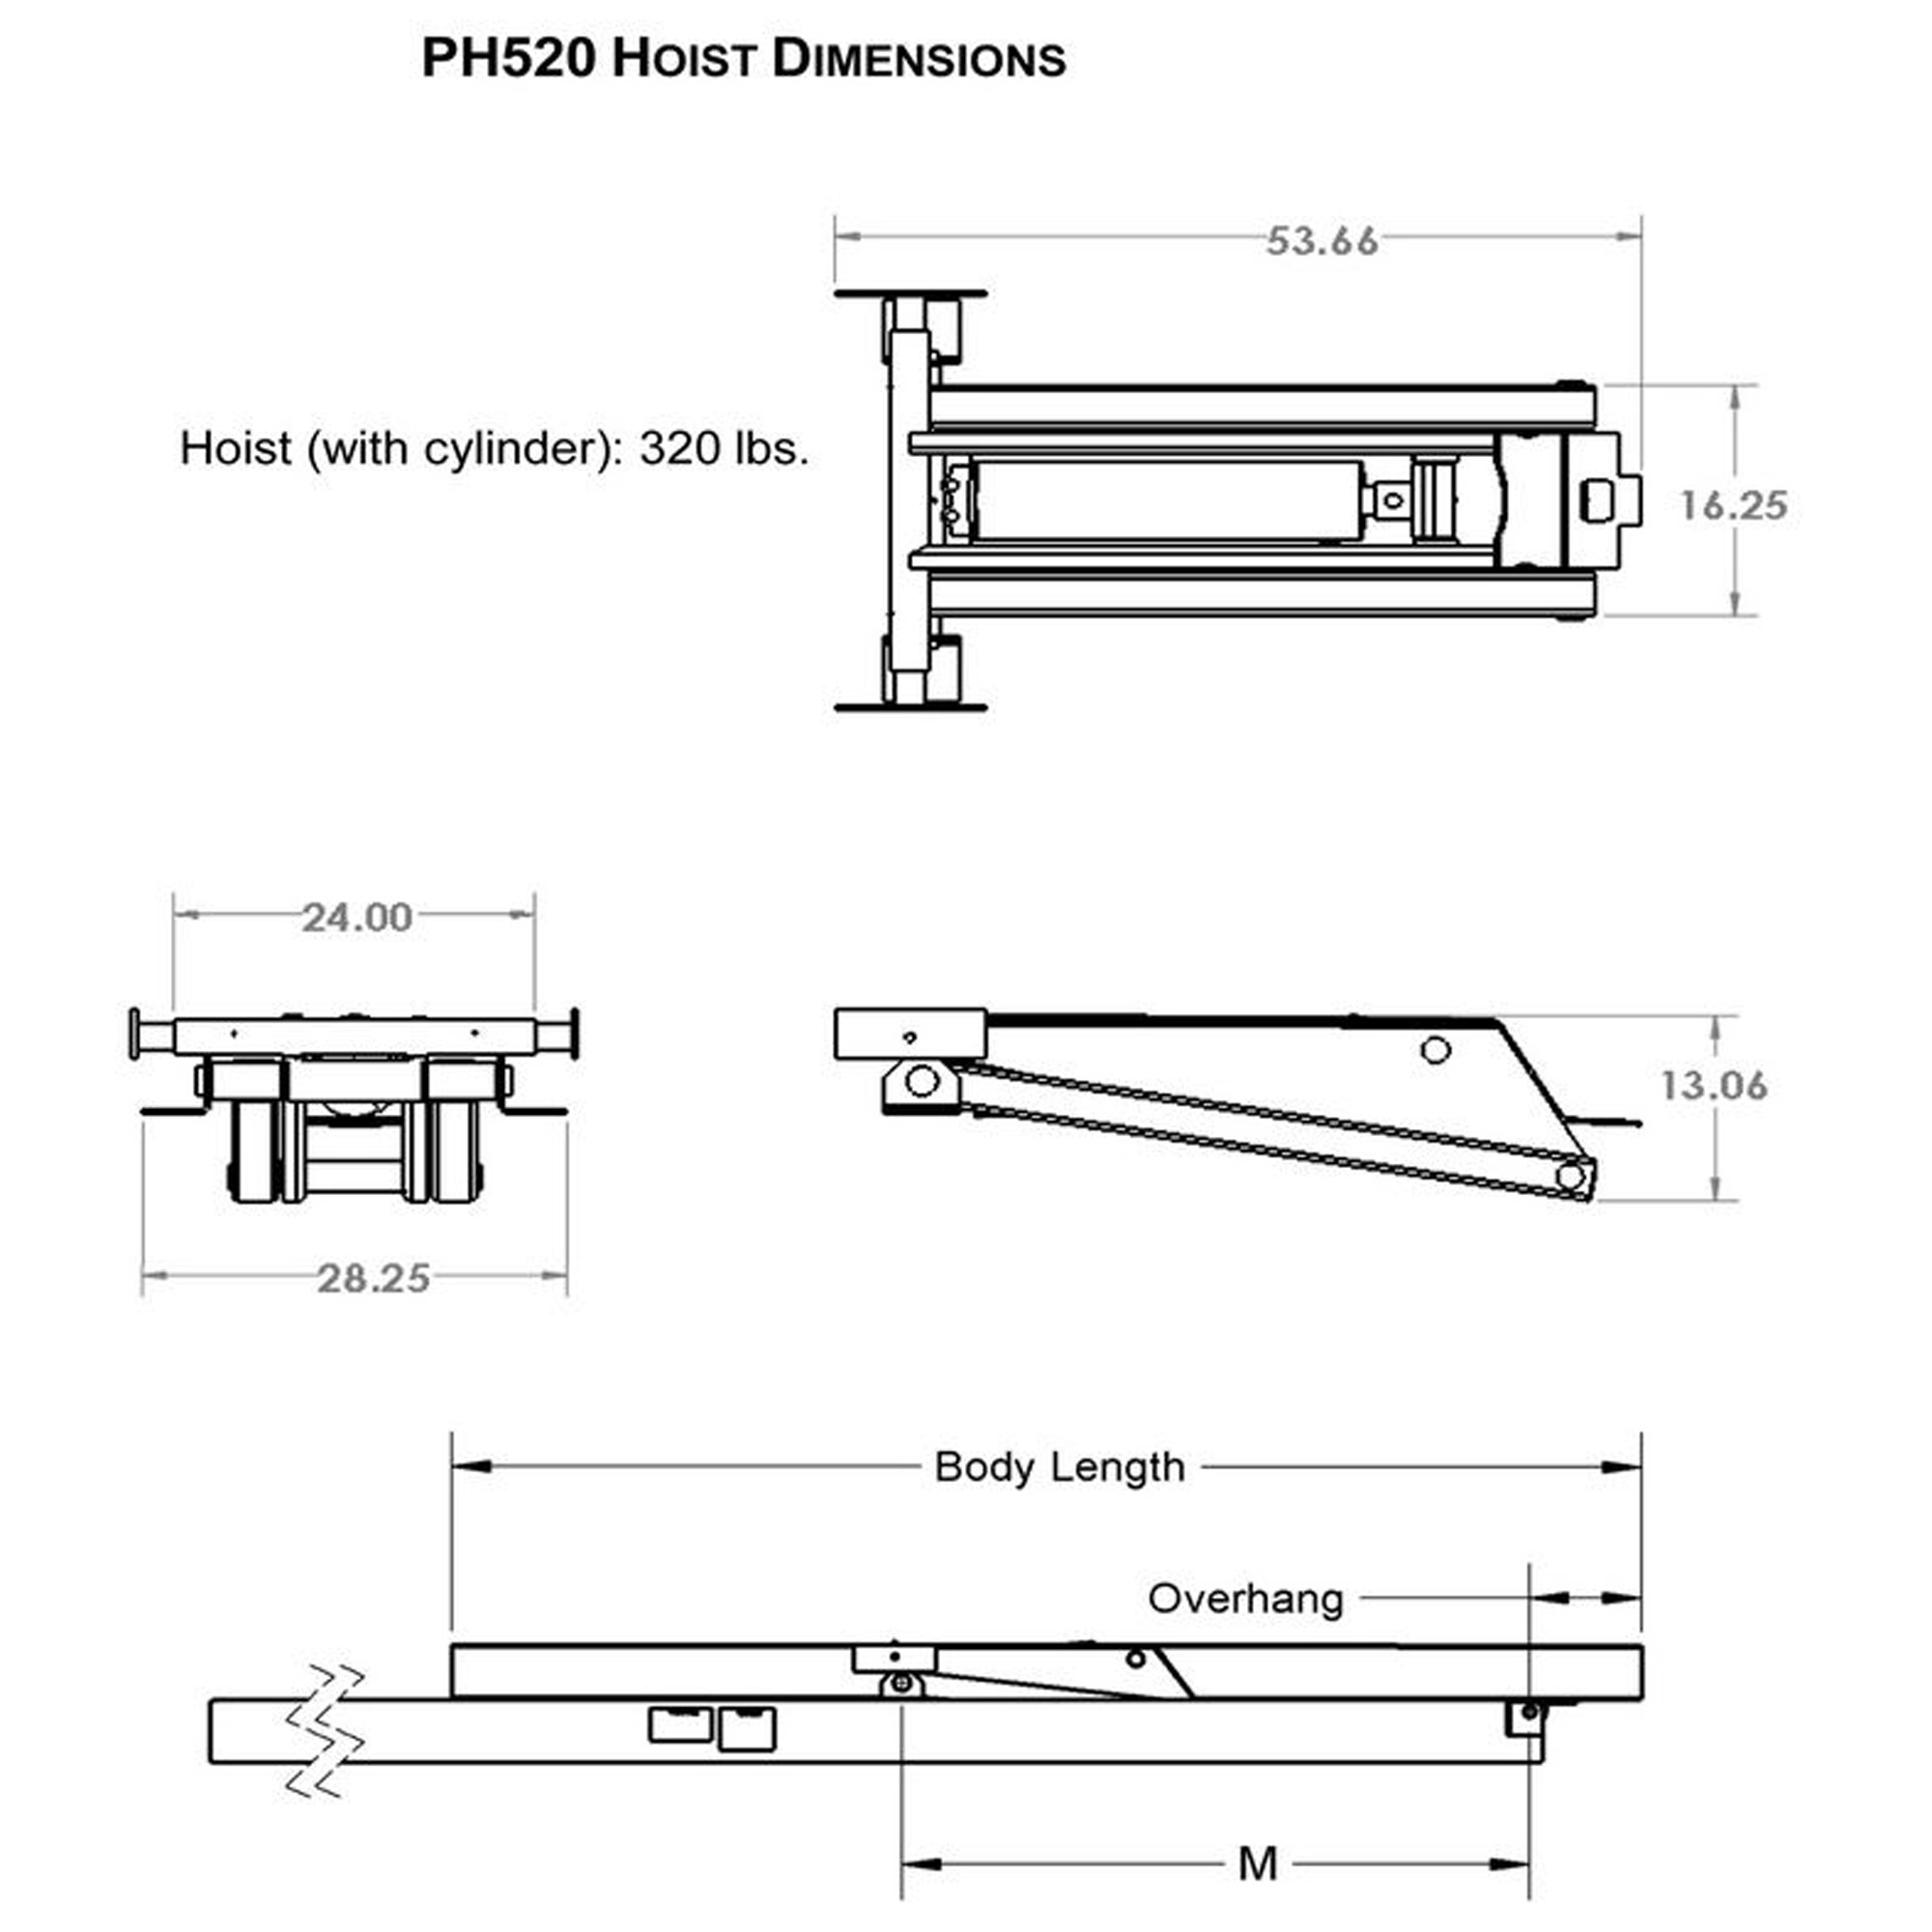 Premium Supply PH520 Power Hoist Dimensions?x88201 10 ton (20,000 lb) dump trailer hydraulic scissor hoist kit ph520 dump trailer hydraulic pump wiring diagram at mr168.co